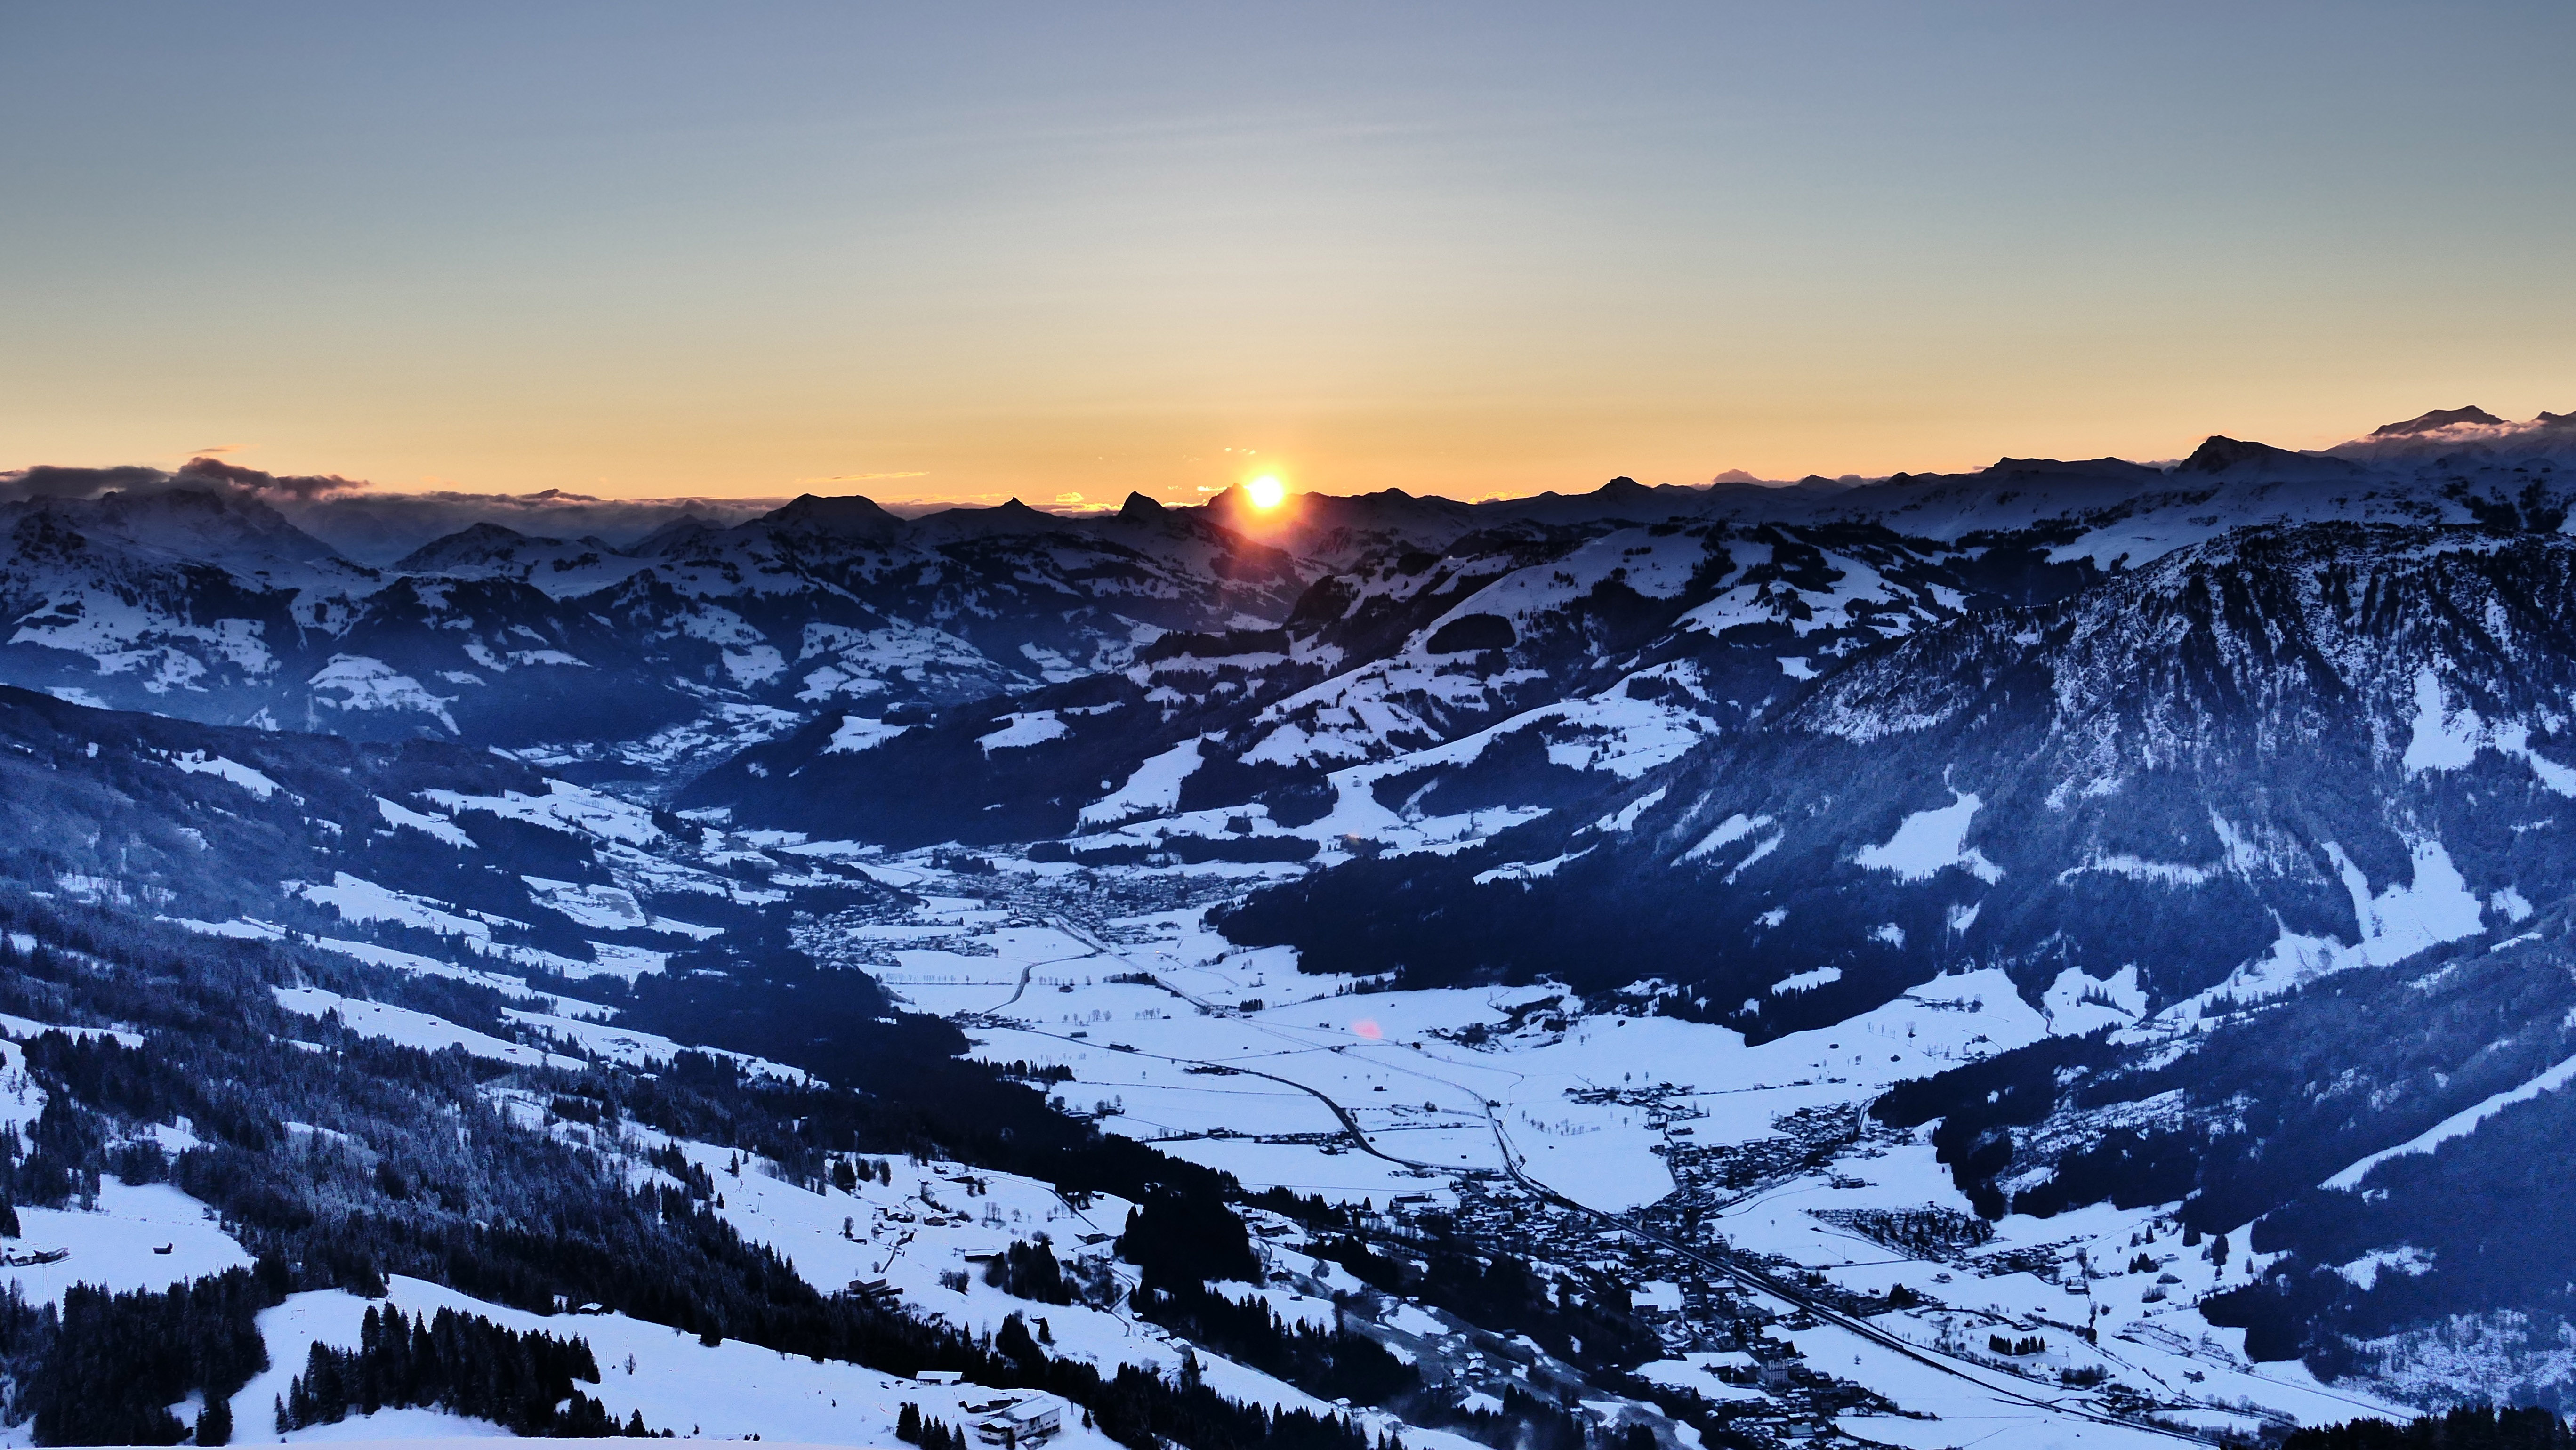 Sunrise over the snowy Alps landscape image - Free stock ...